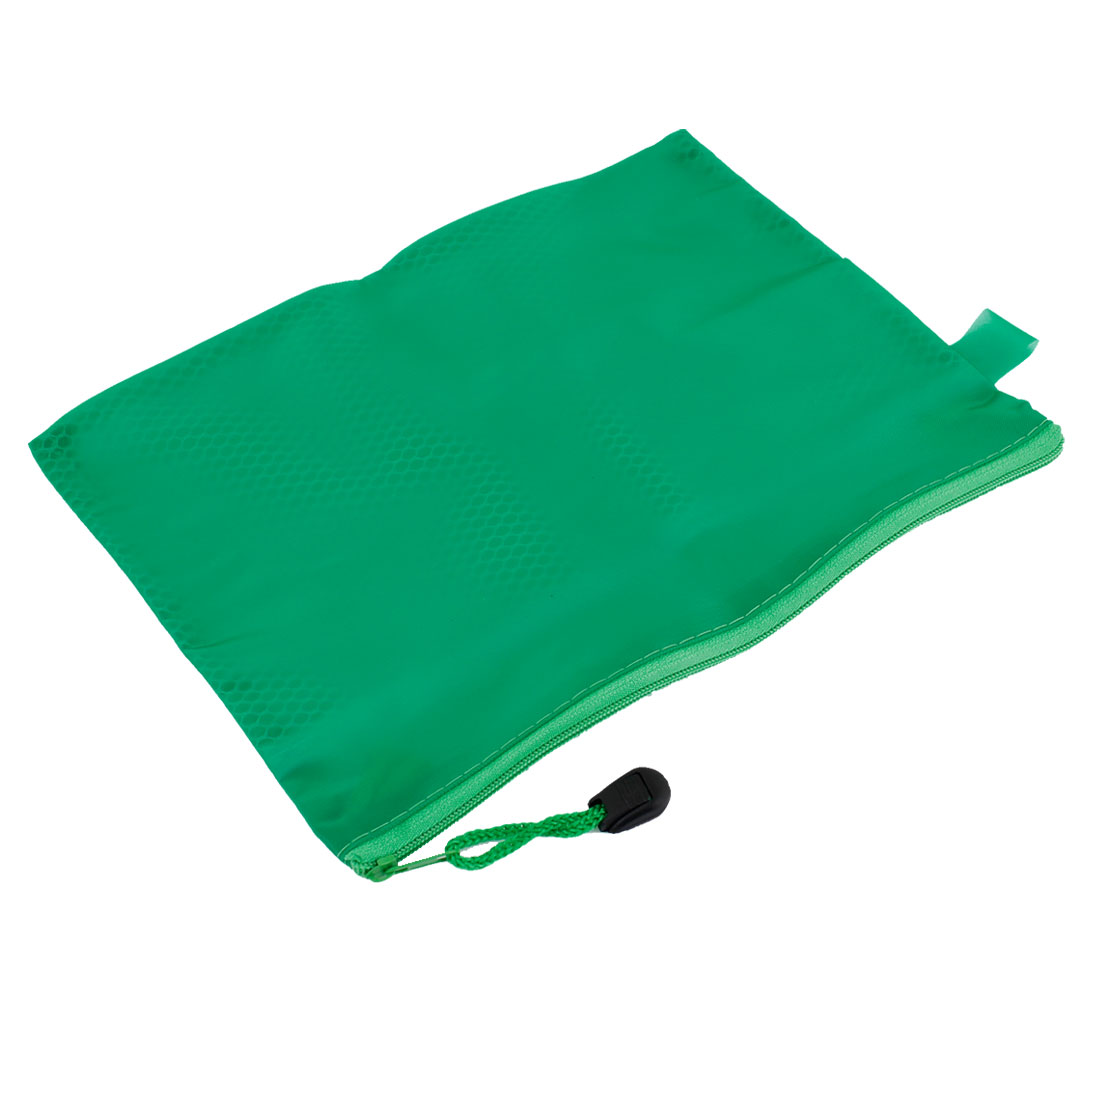 Office School Meshy Inside Green PVC Zipper Stationery Case Pouch Bag